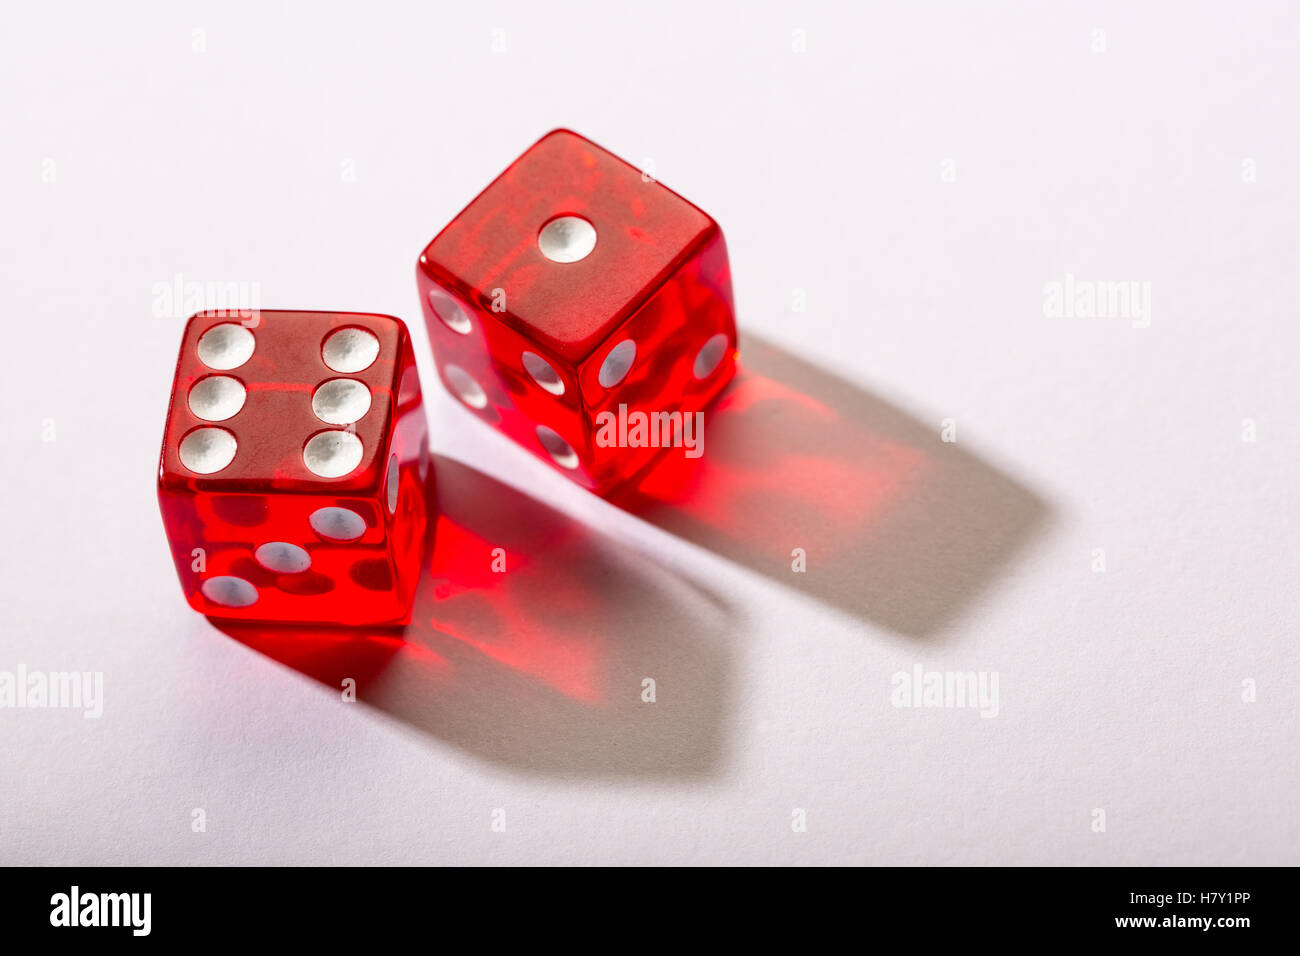 red dice against a white background - Stock Image